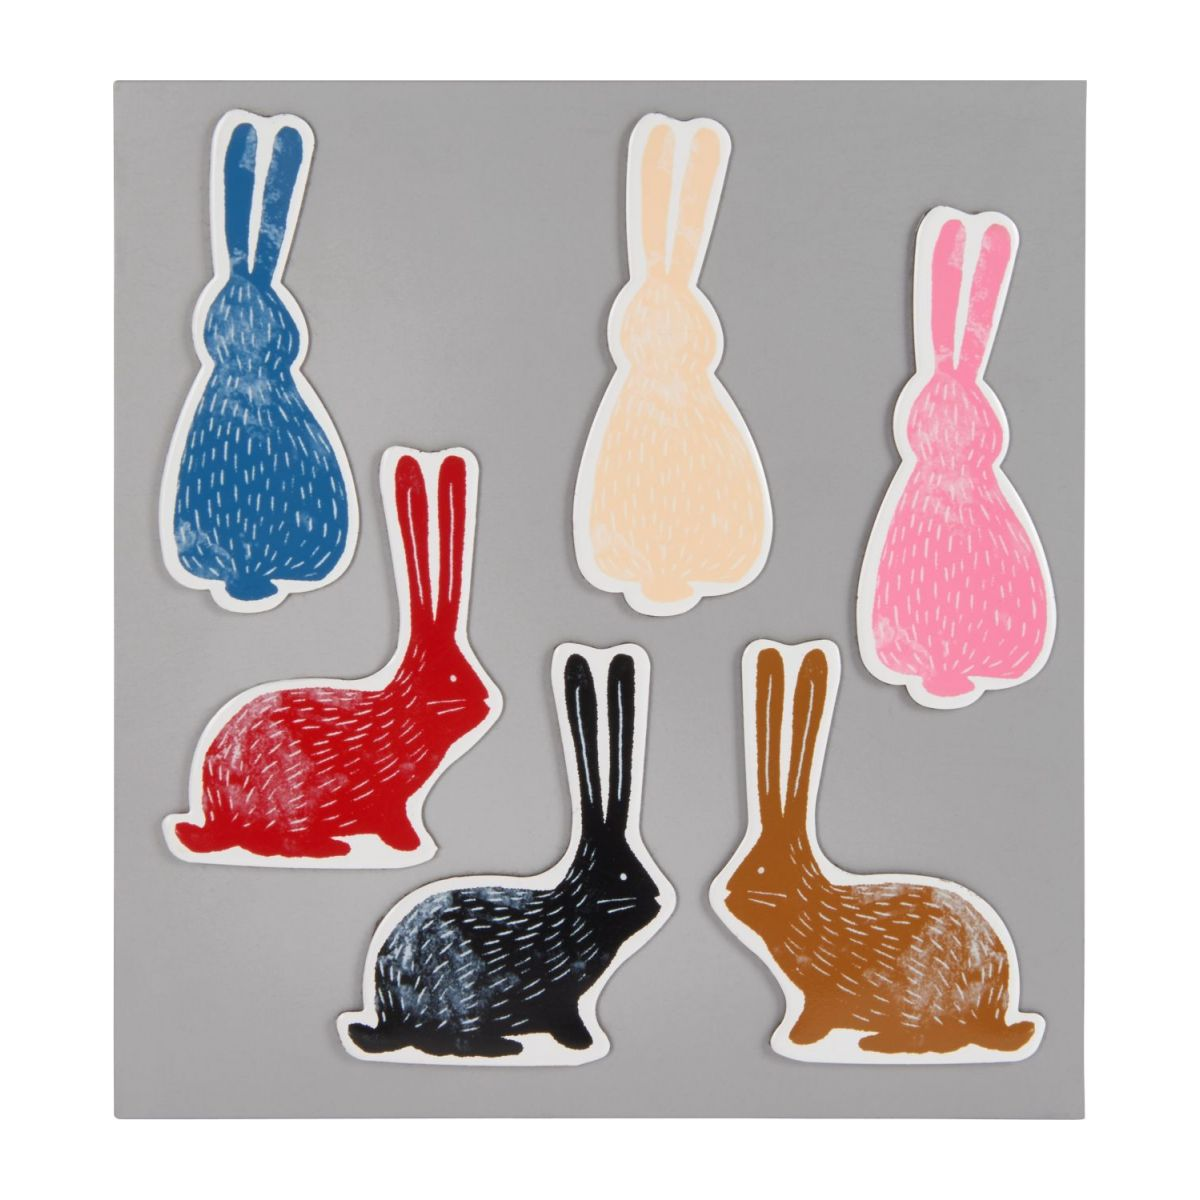 Bunny magnets n°1